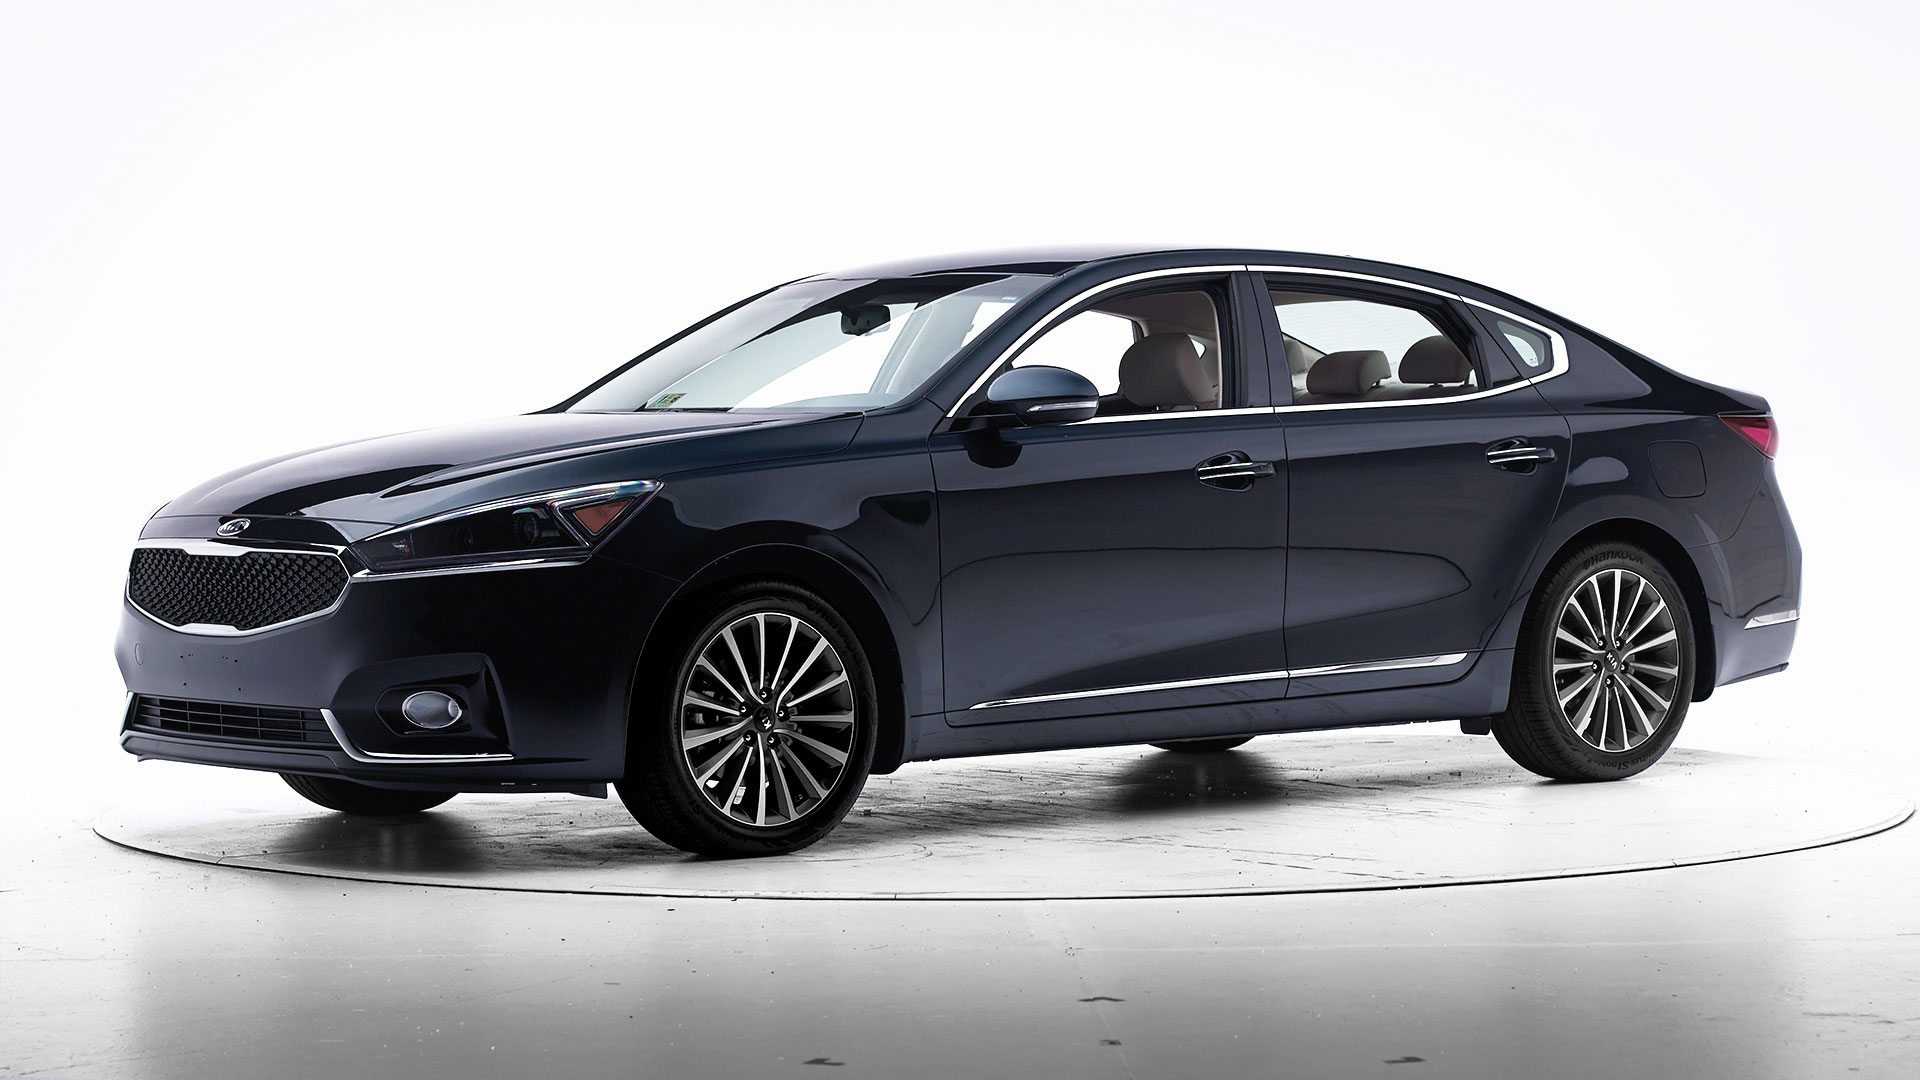 2017 Kia Cadenza 4-door sedan